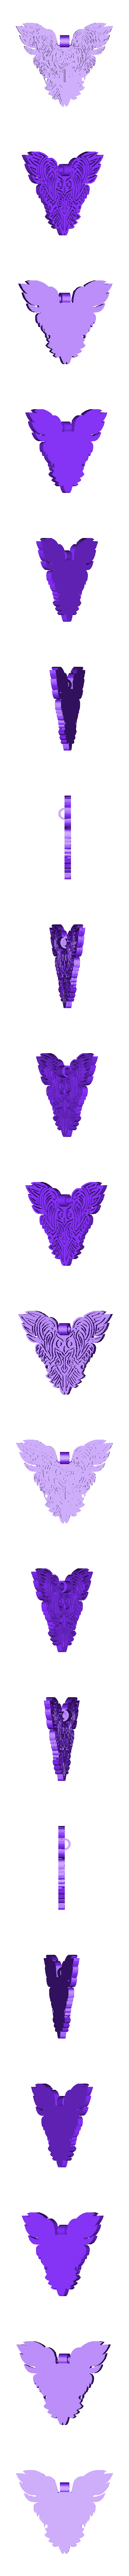 Chouette_Pendentif.stl Download free STL file OWL OWL Pendant and Wall Decoration • 3D printing object, oasisk